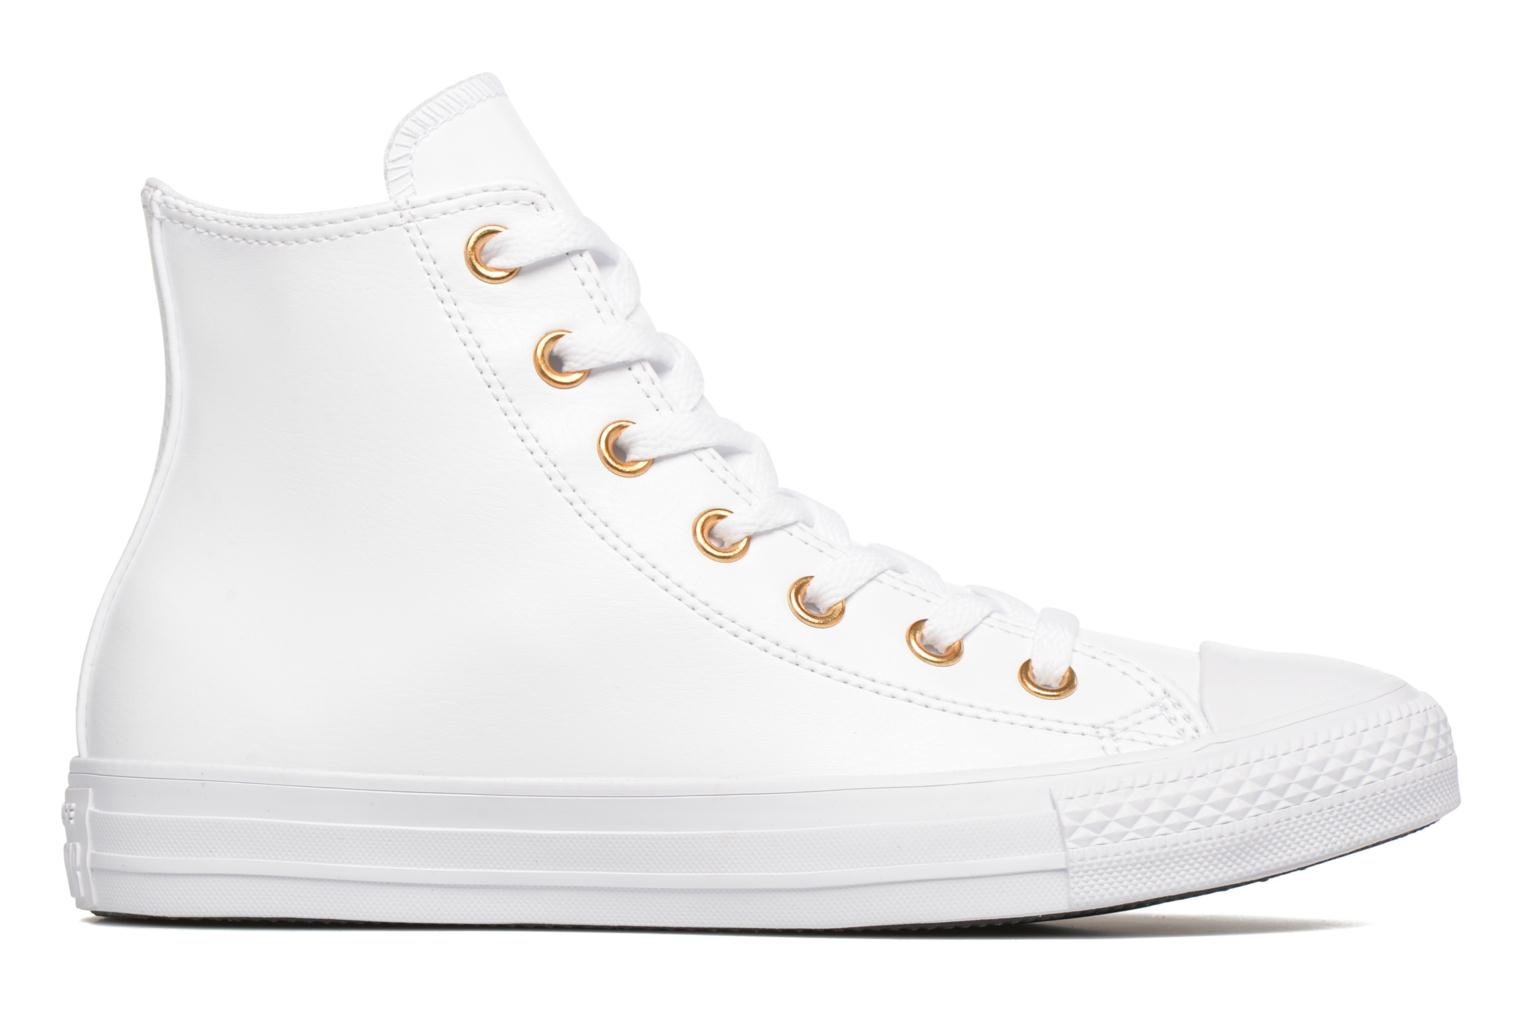 Chuck Taylor All Star Hi Craft SL White/Gold/White